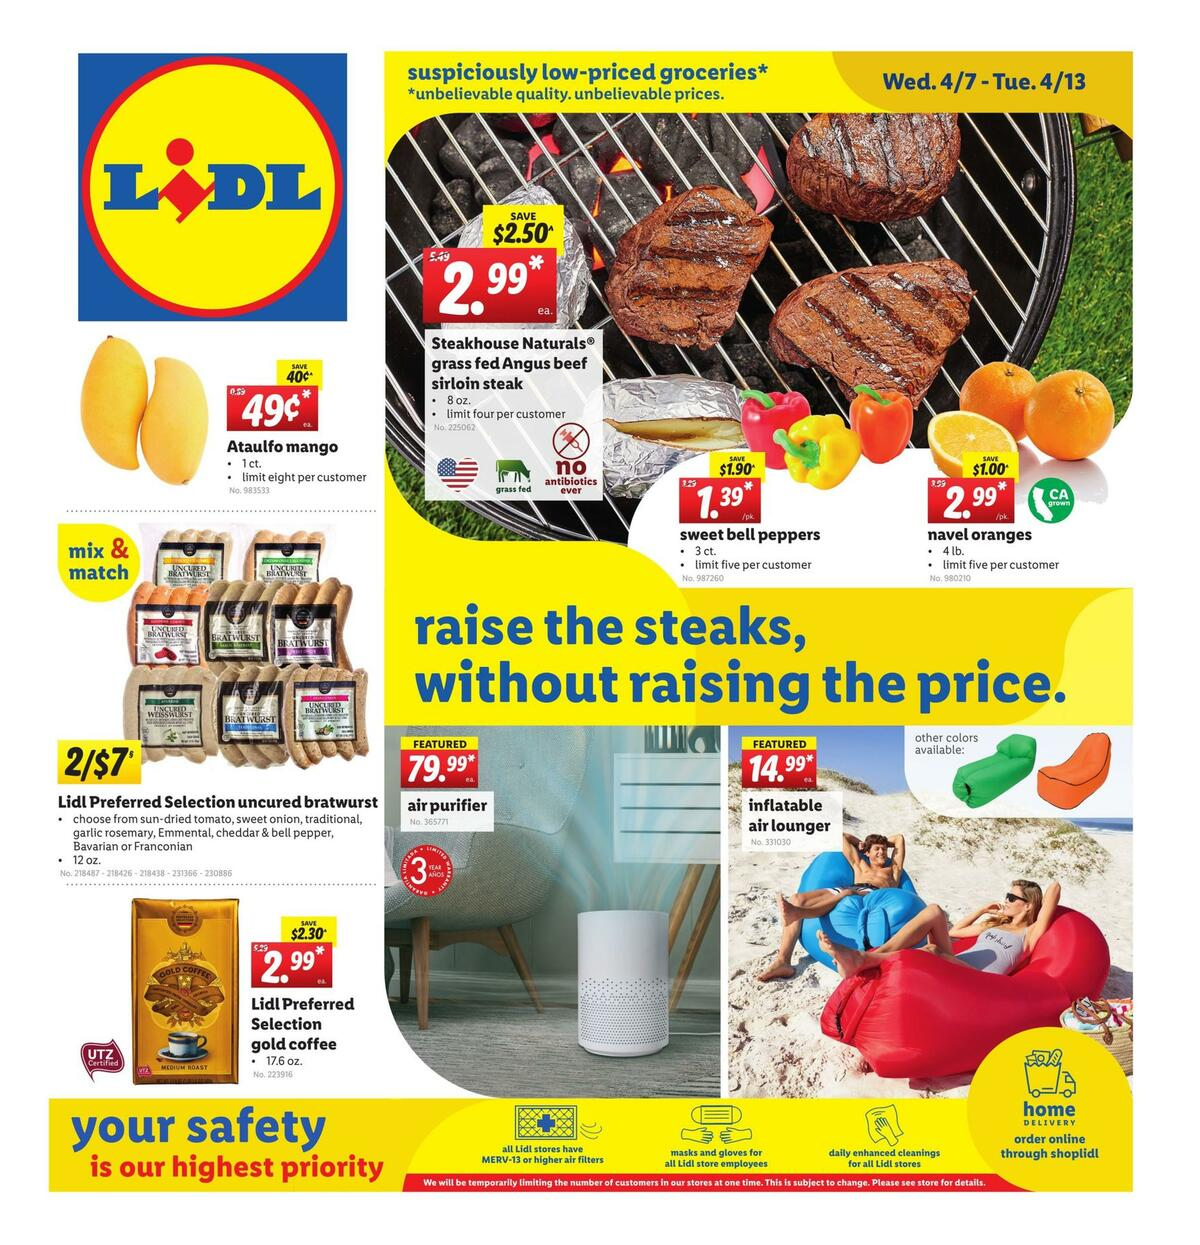 LIDL Weekly Ad from April 7